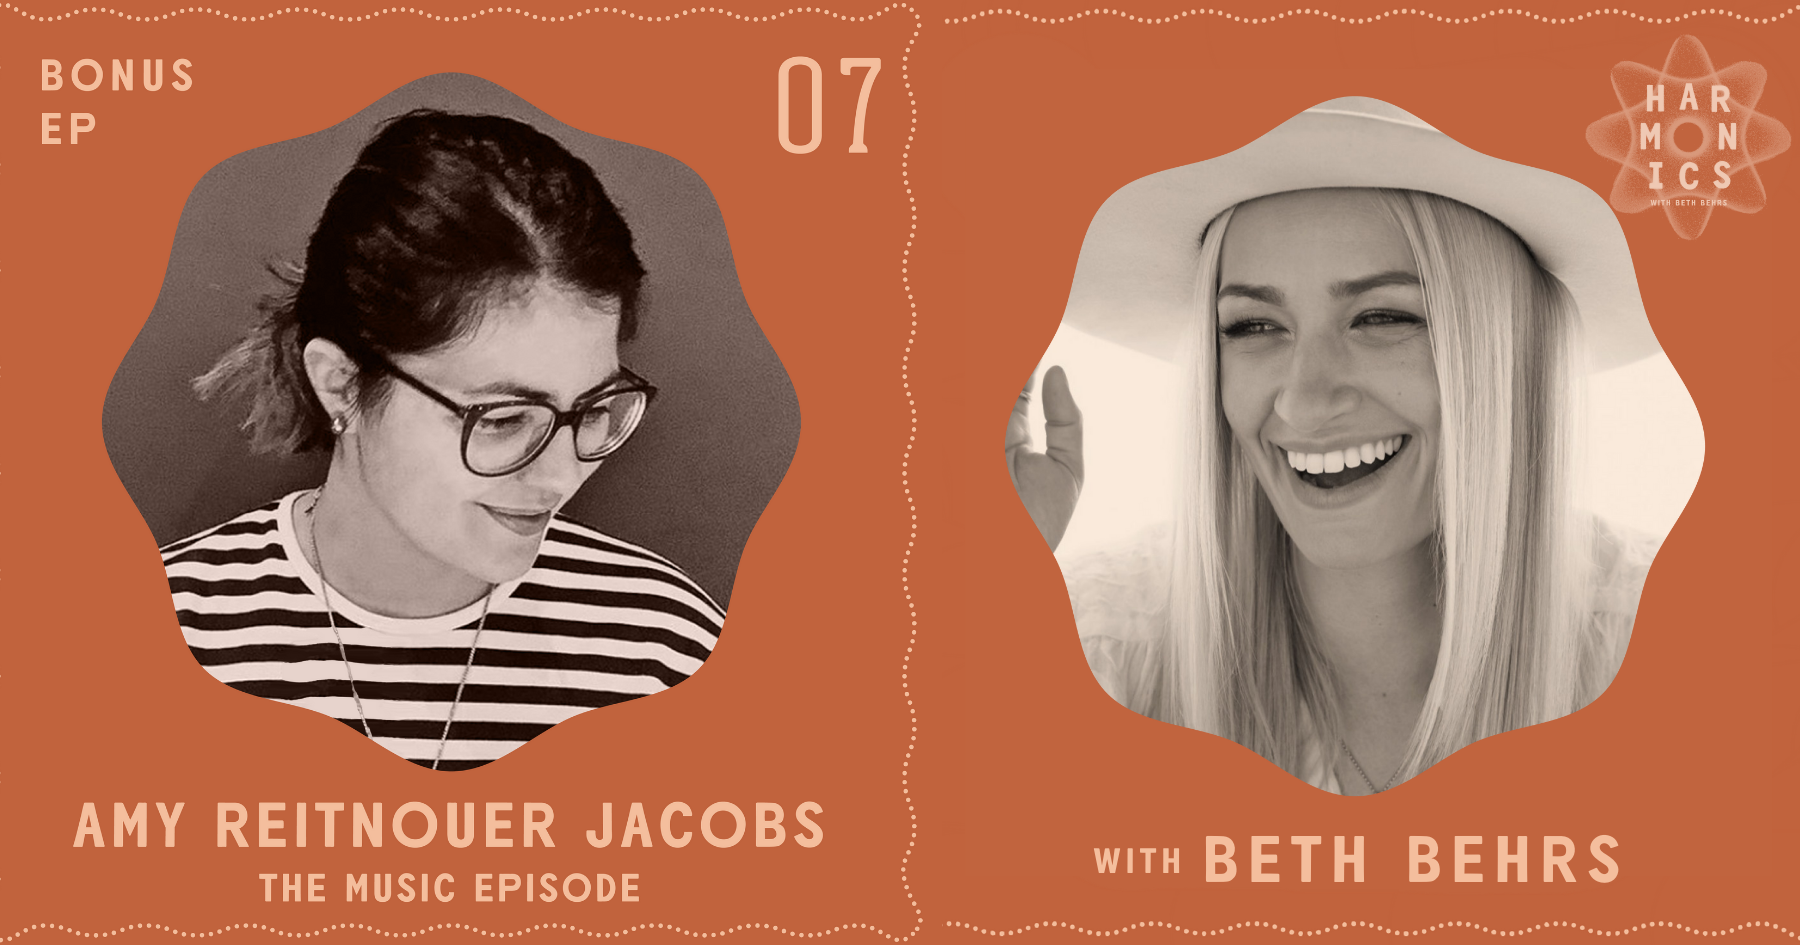 Harmonics with Beth Behrs: Time for Some Music Recommendations